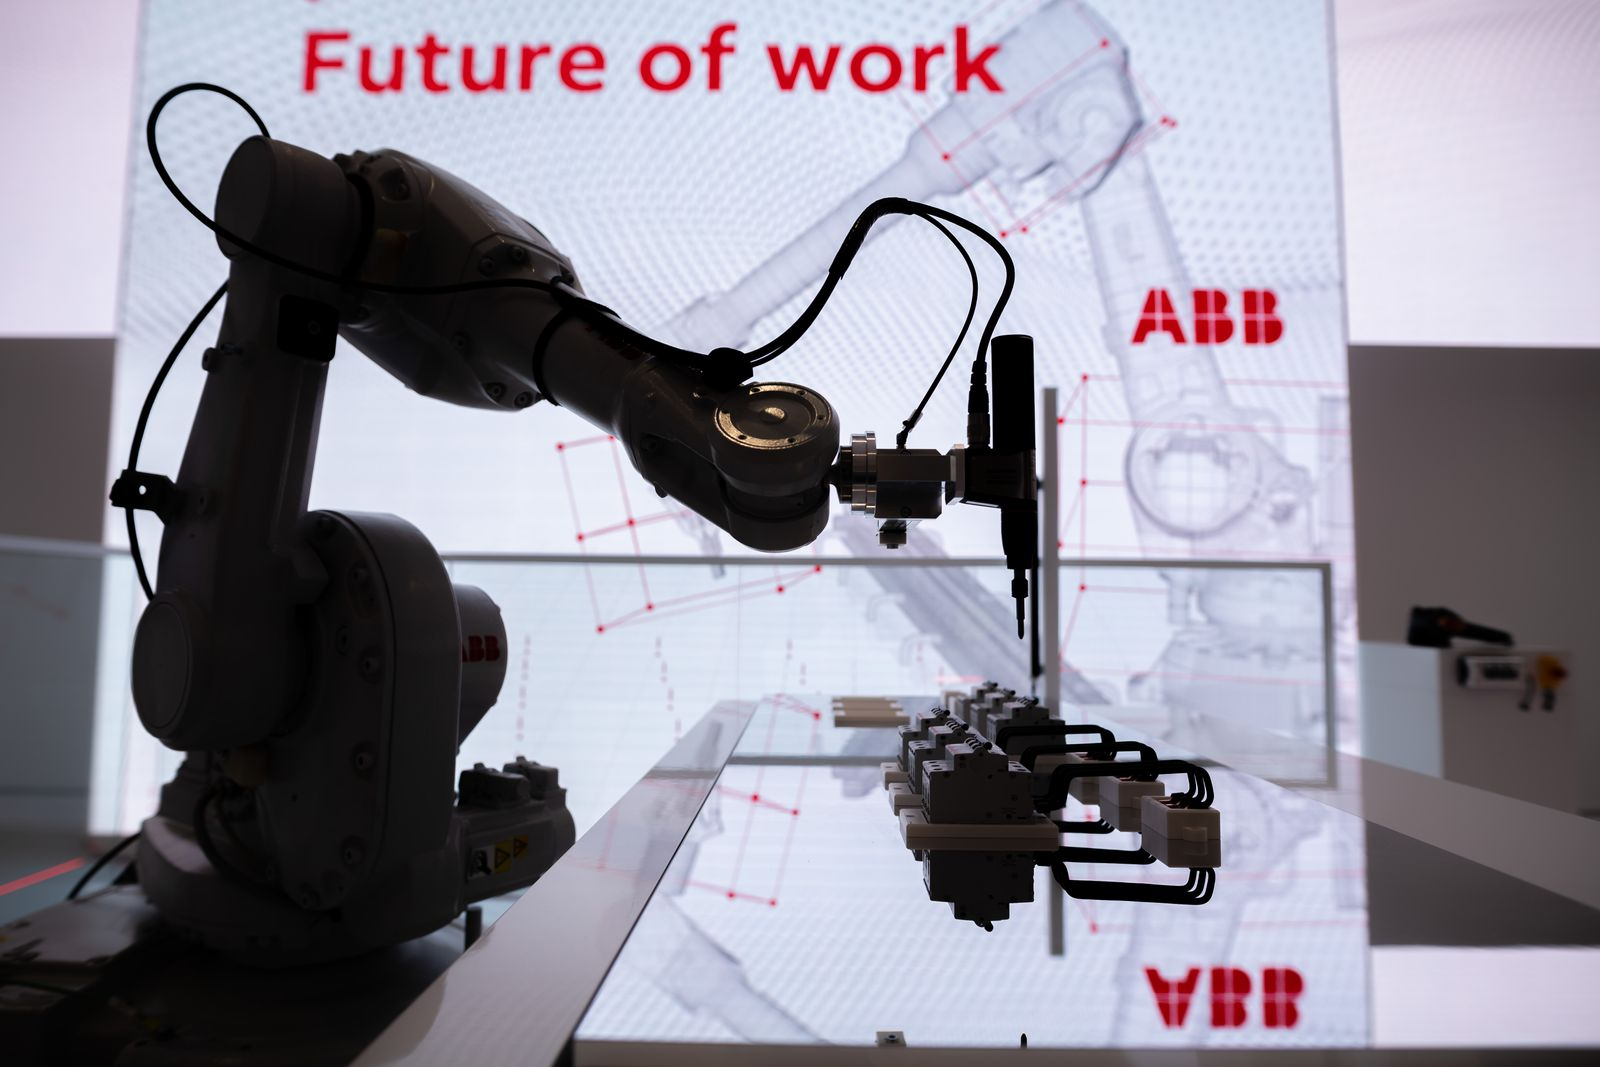 Hannover Messe ABB